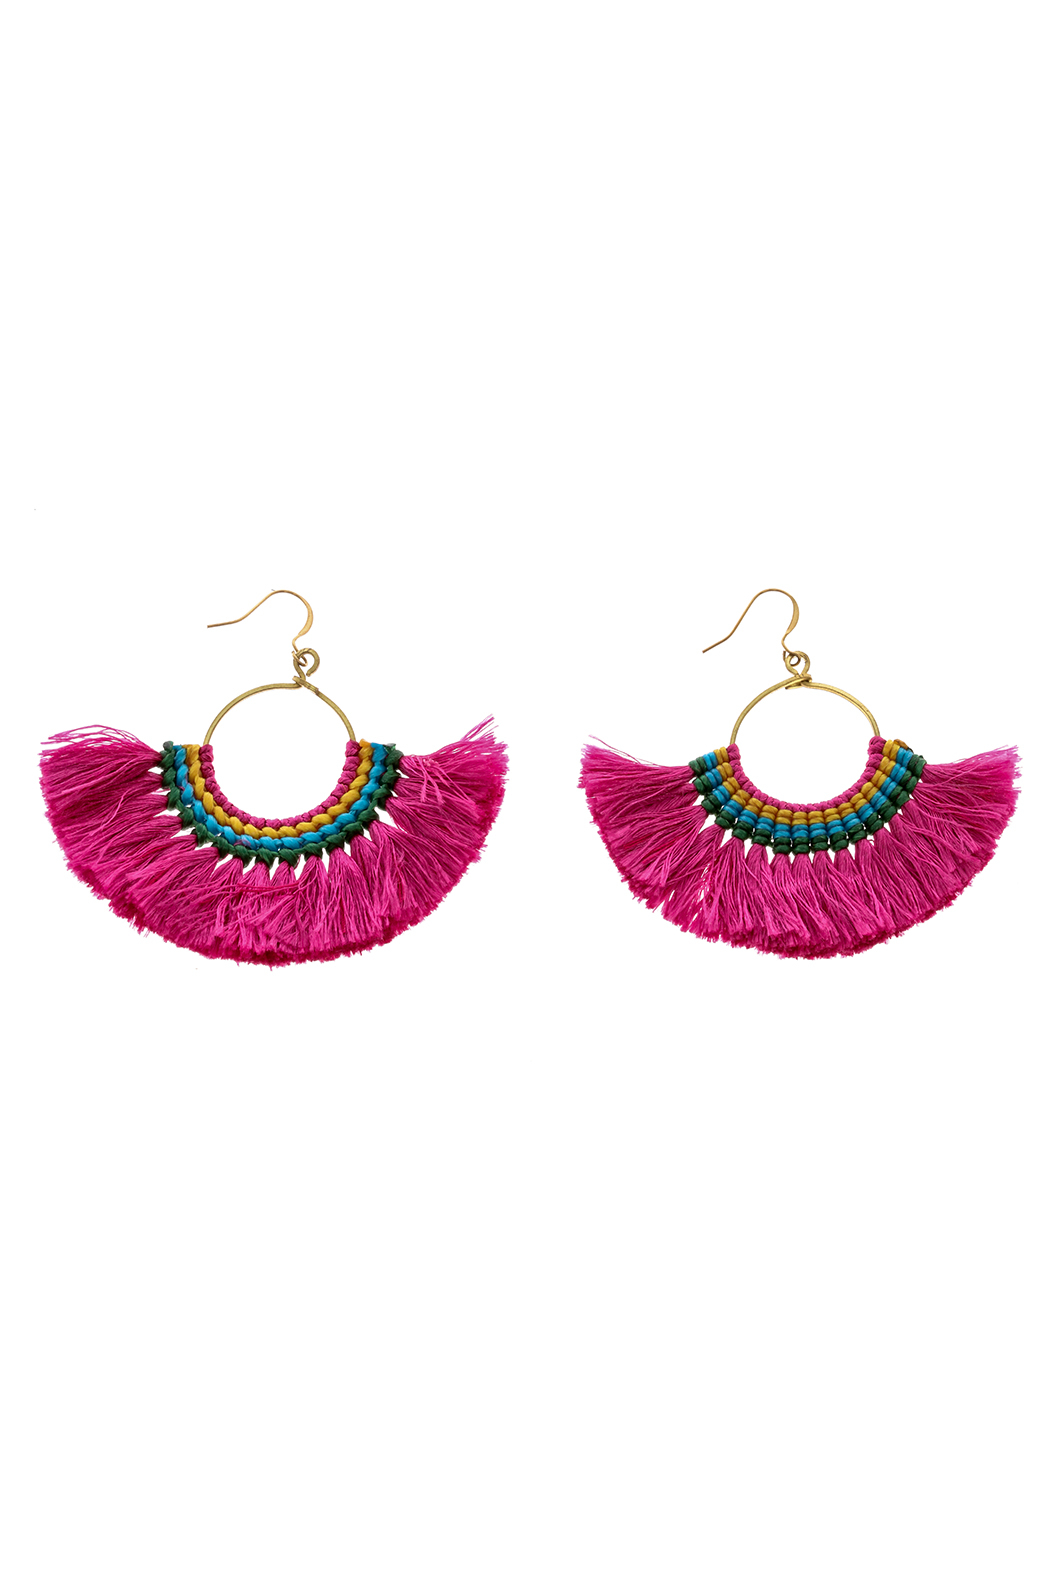 Hmong Tribe Boheme Tassel Earrings - Main Image